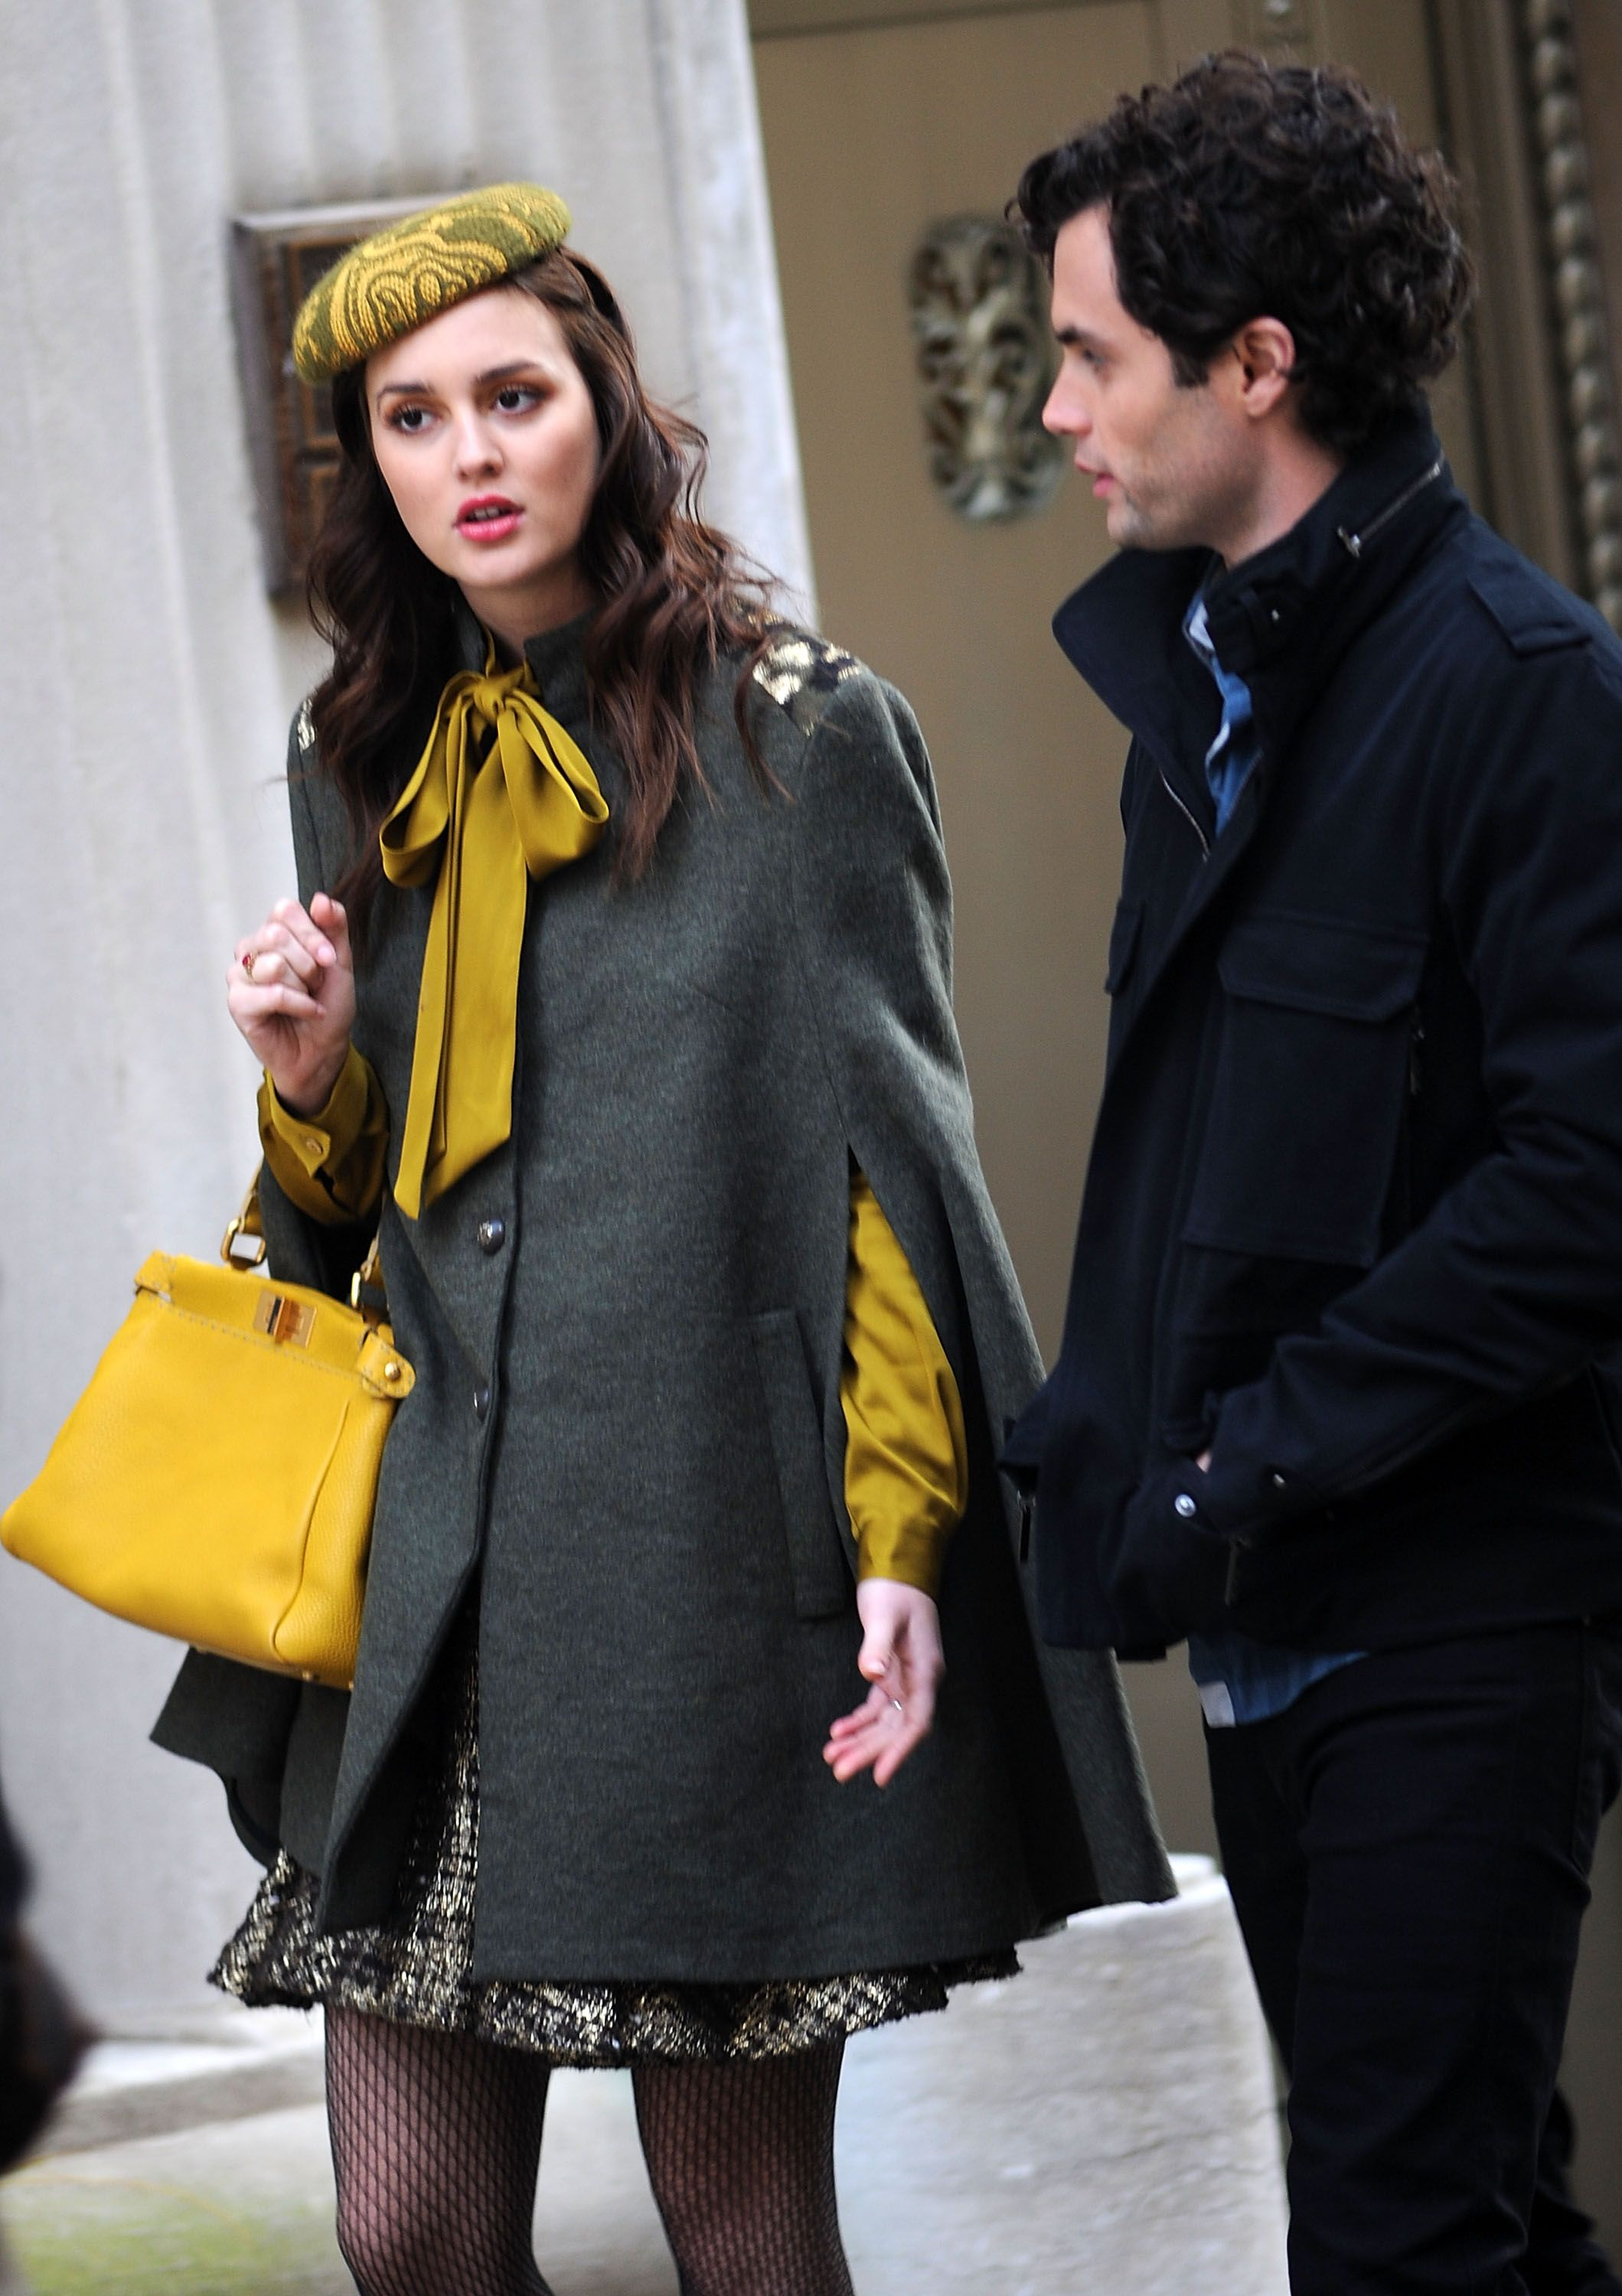 On Location For 'Gossip Girl' - October 31, 2011